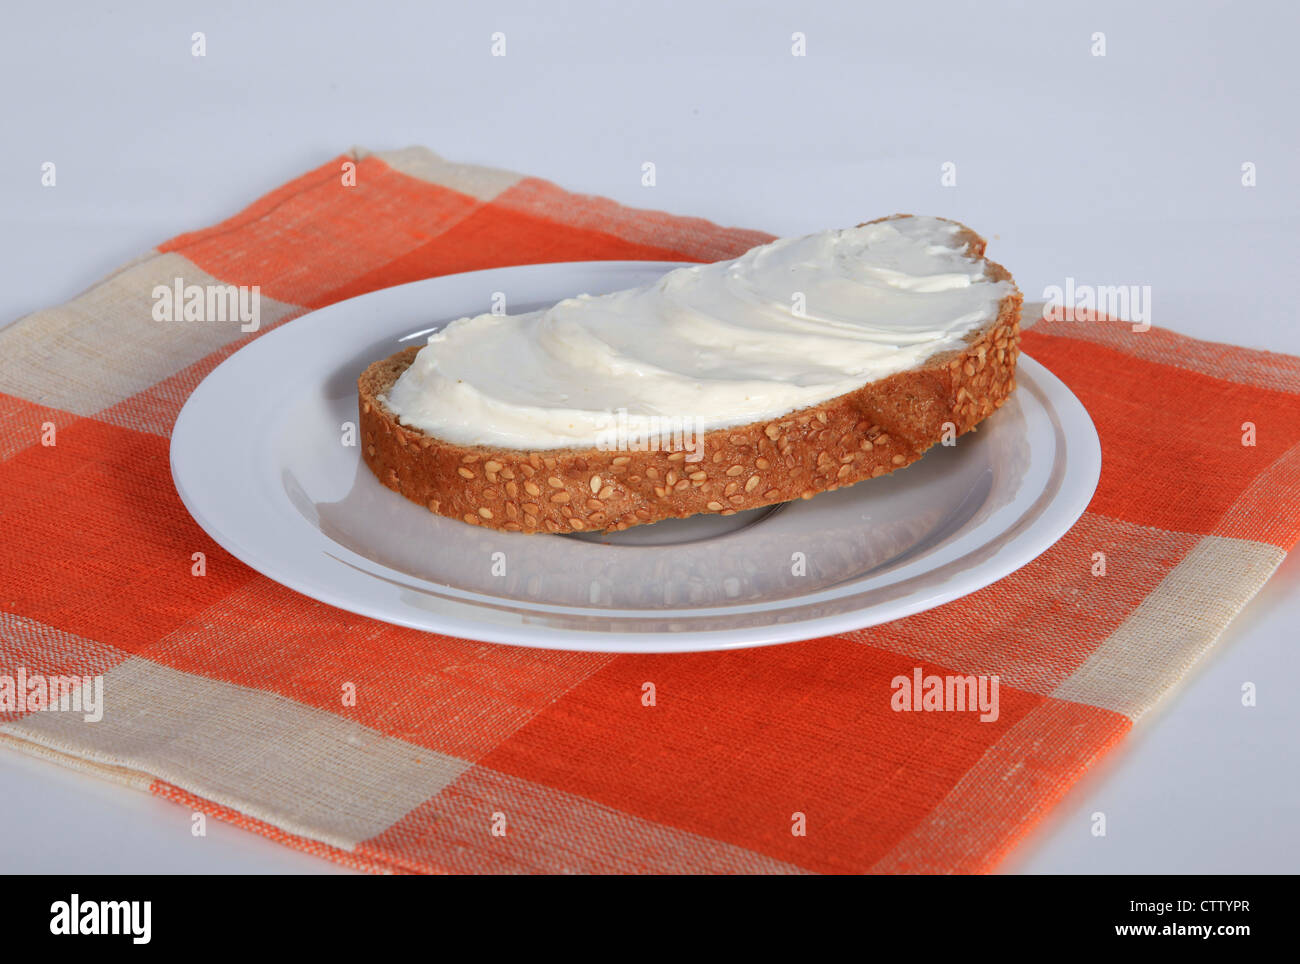 Appetizing sandwich with butter on the white saucer - Stock Image